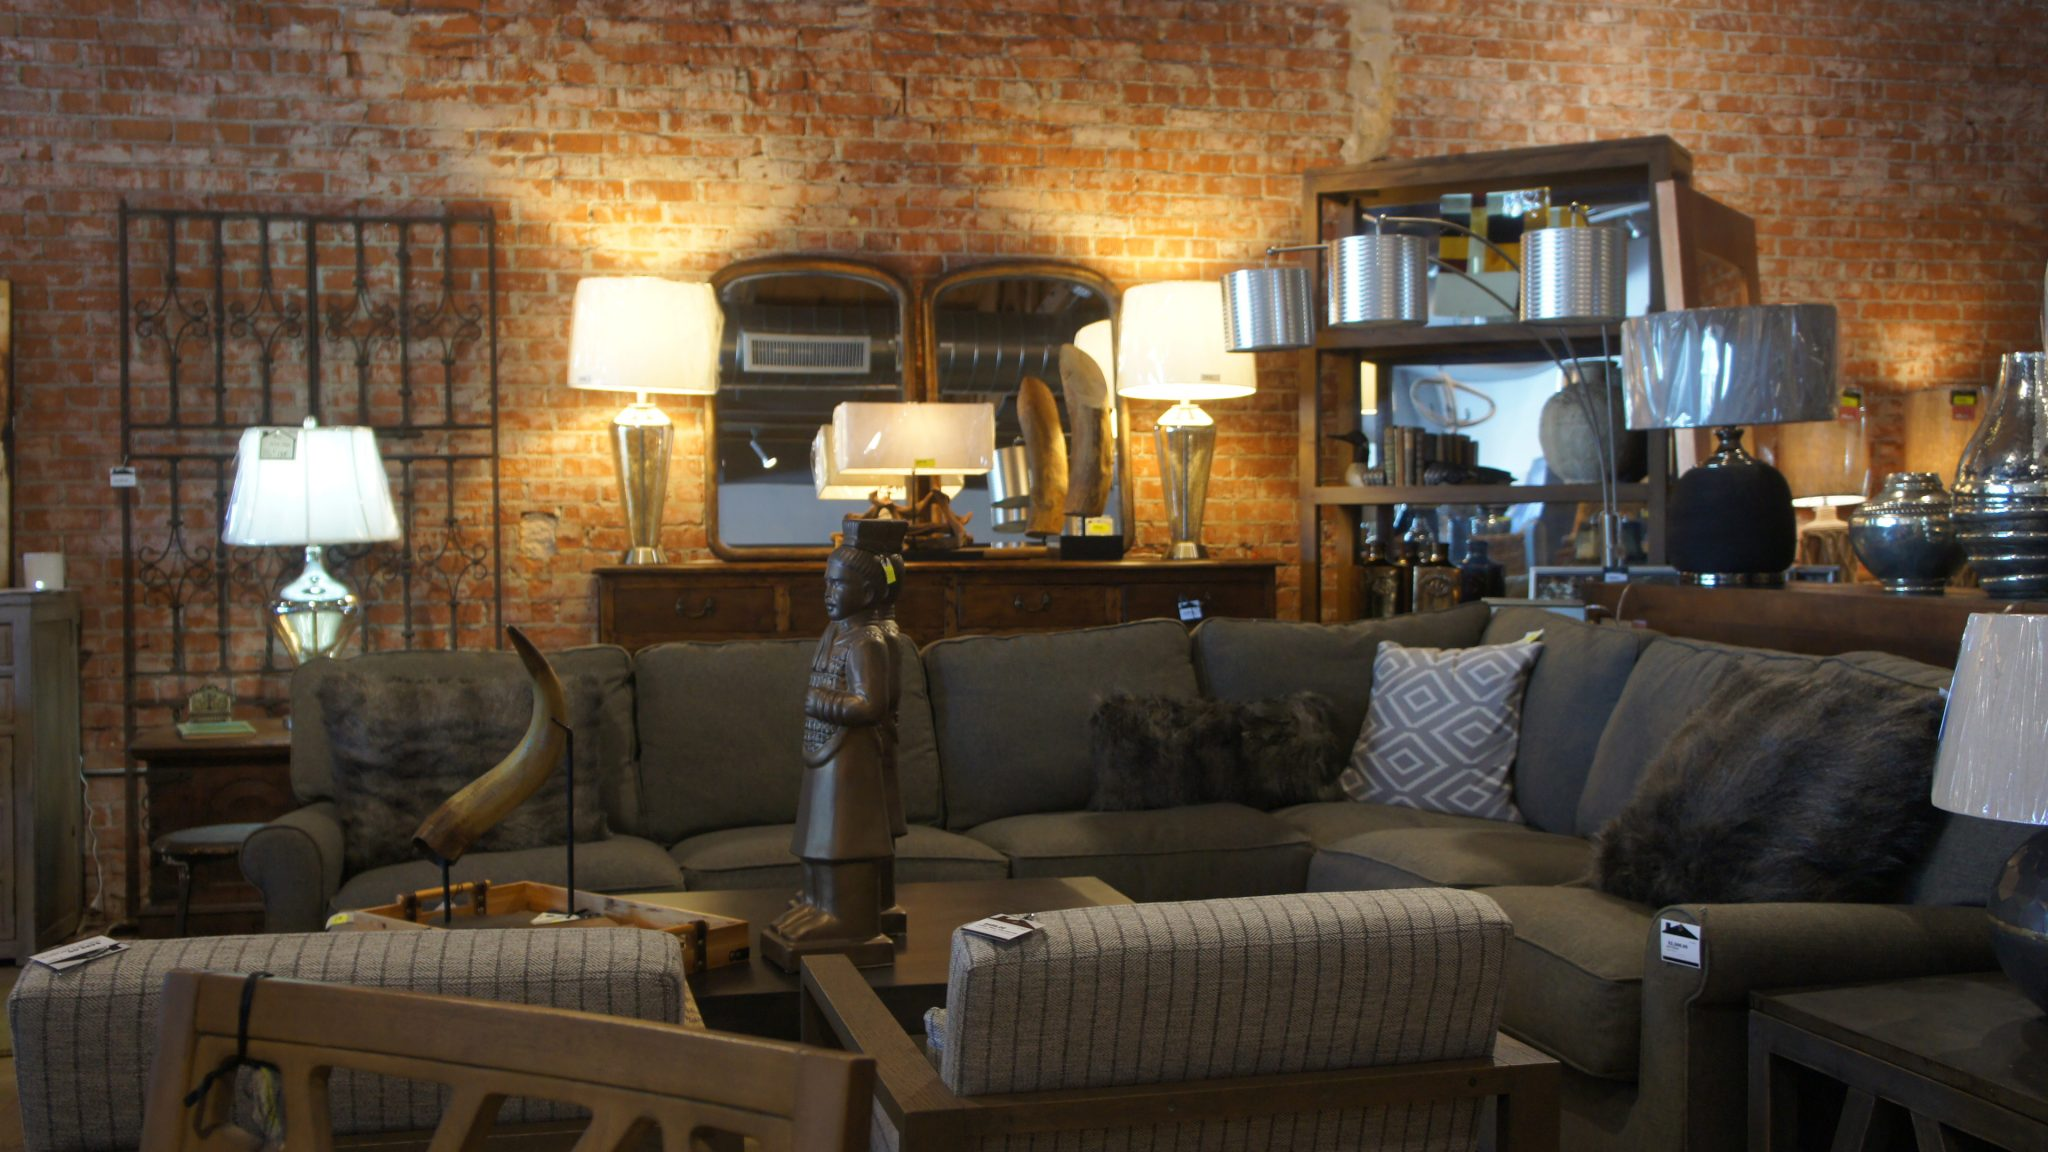 Grand opening of new furniture store in arcadia offers for Local home decor stores